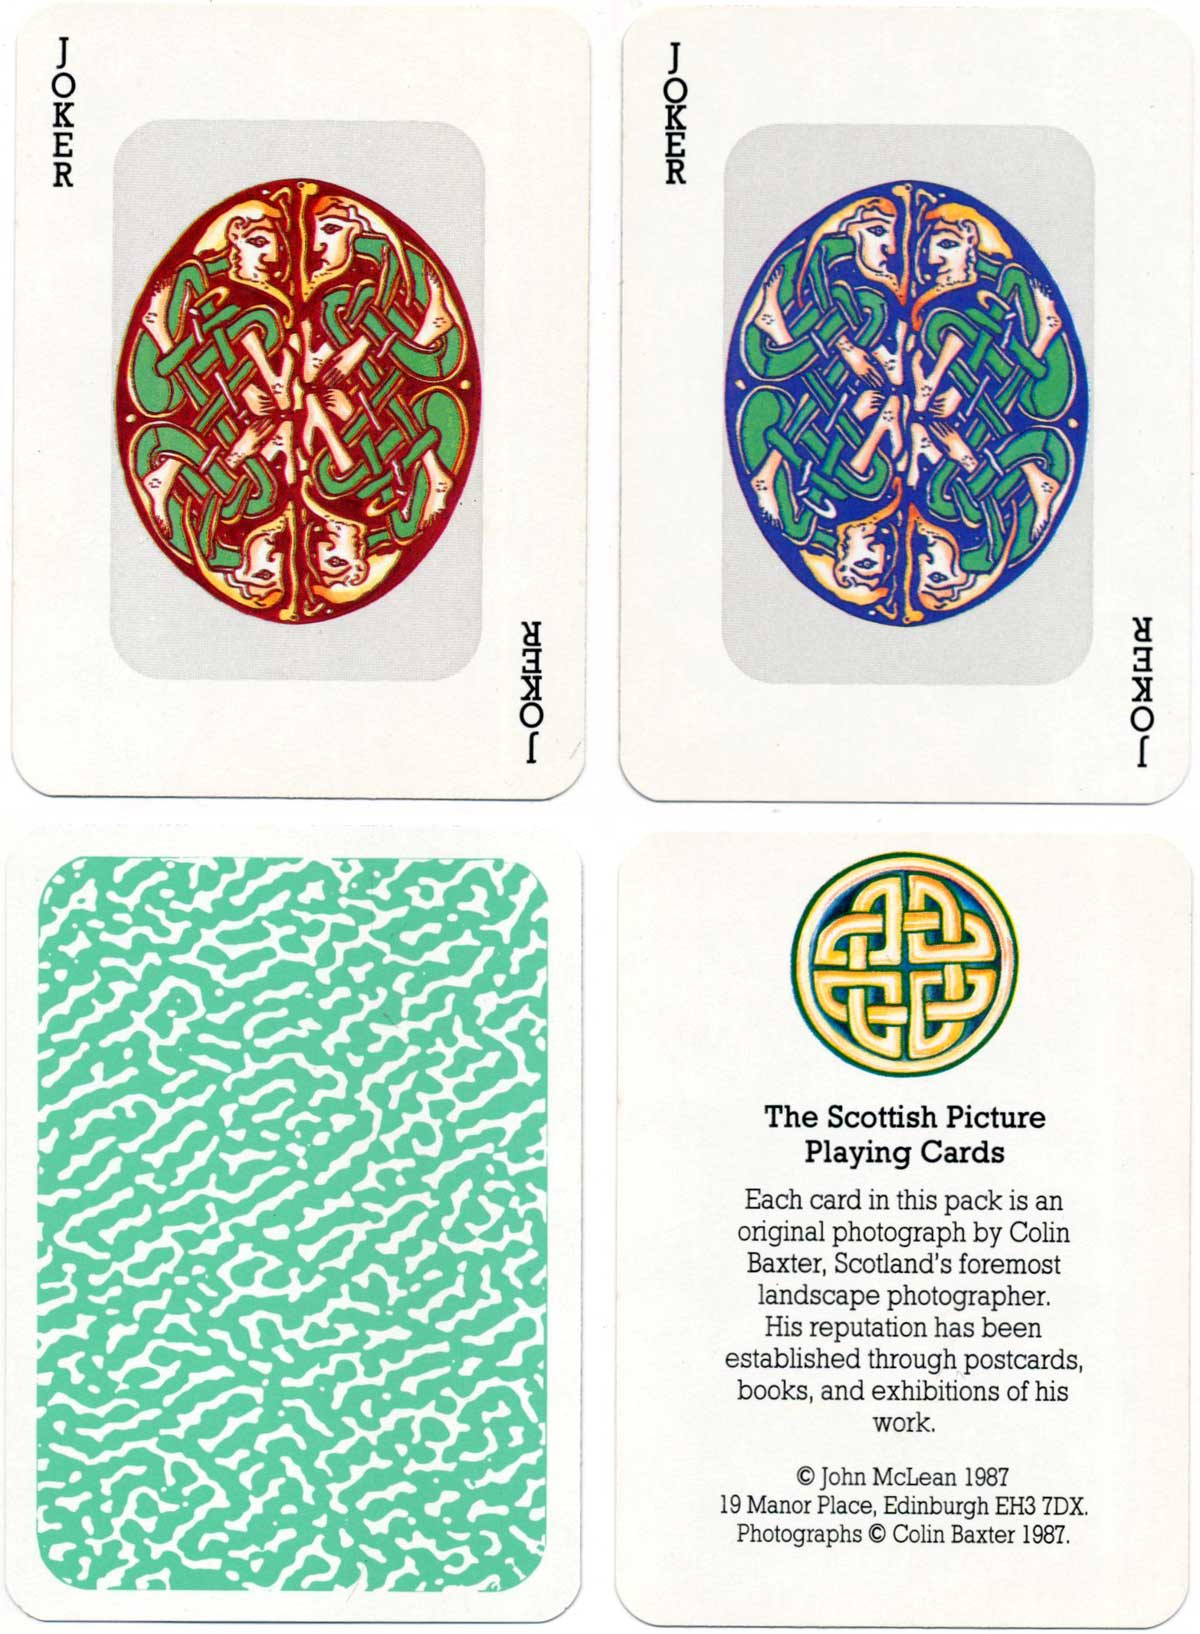 Scottish Picture Playing Cards featuring photographs by Colin Baxter, 1987